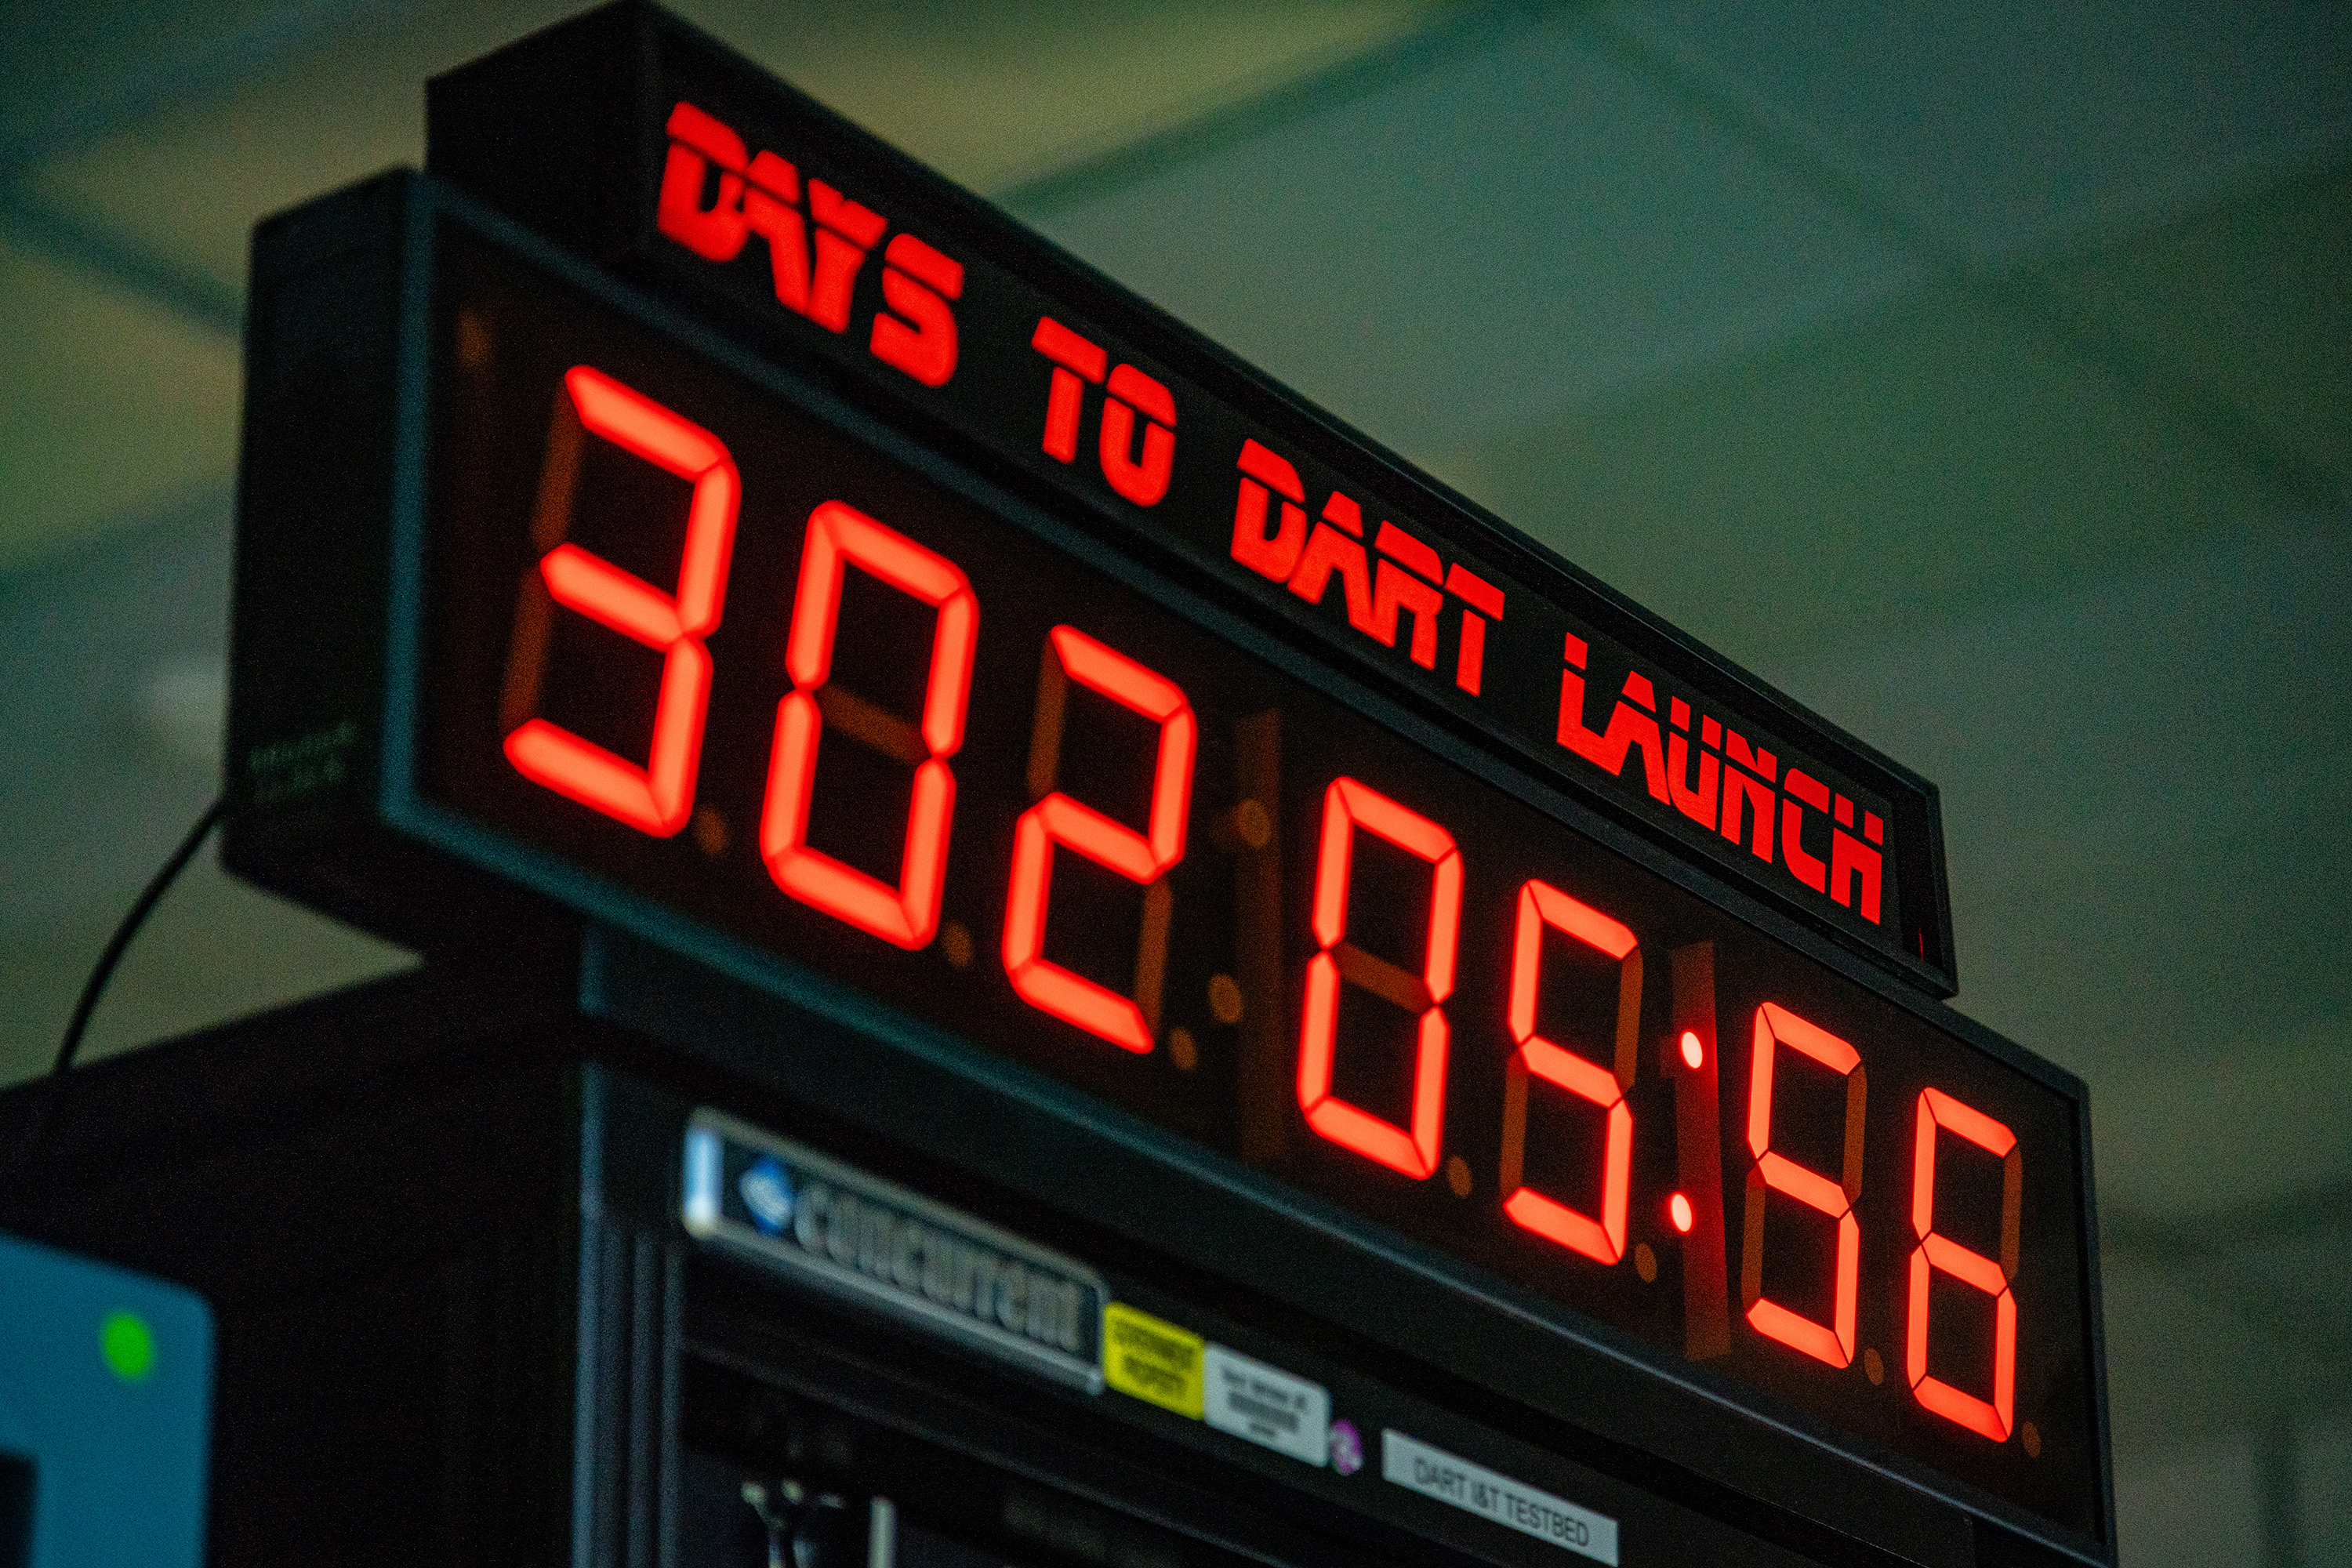 DART Control room countdown clock